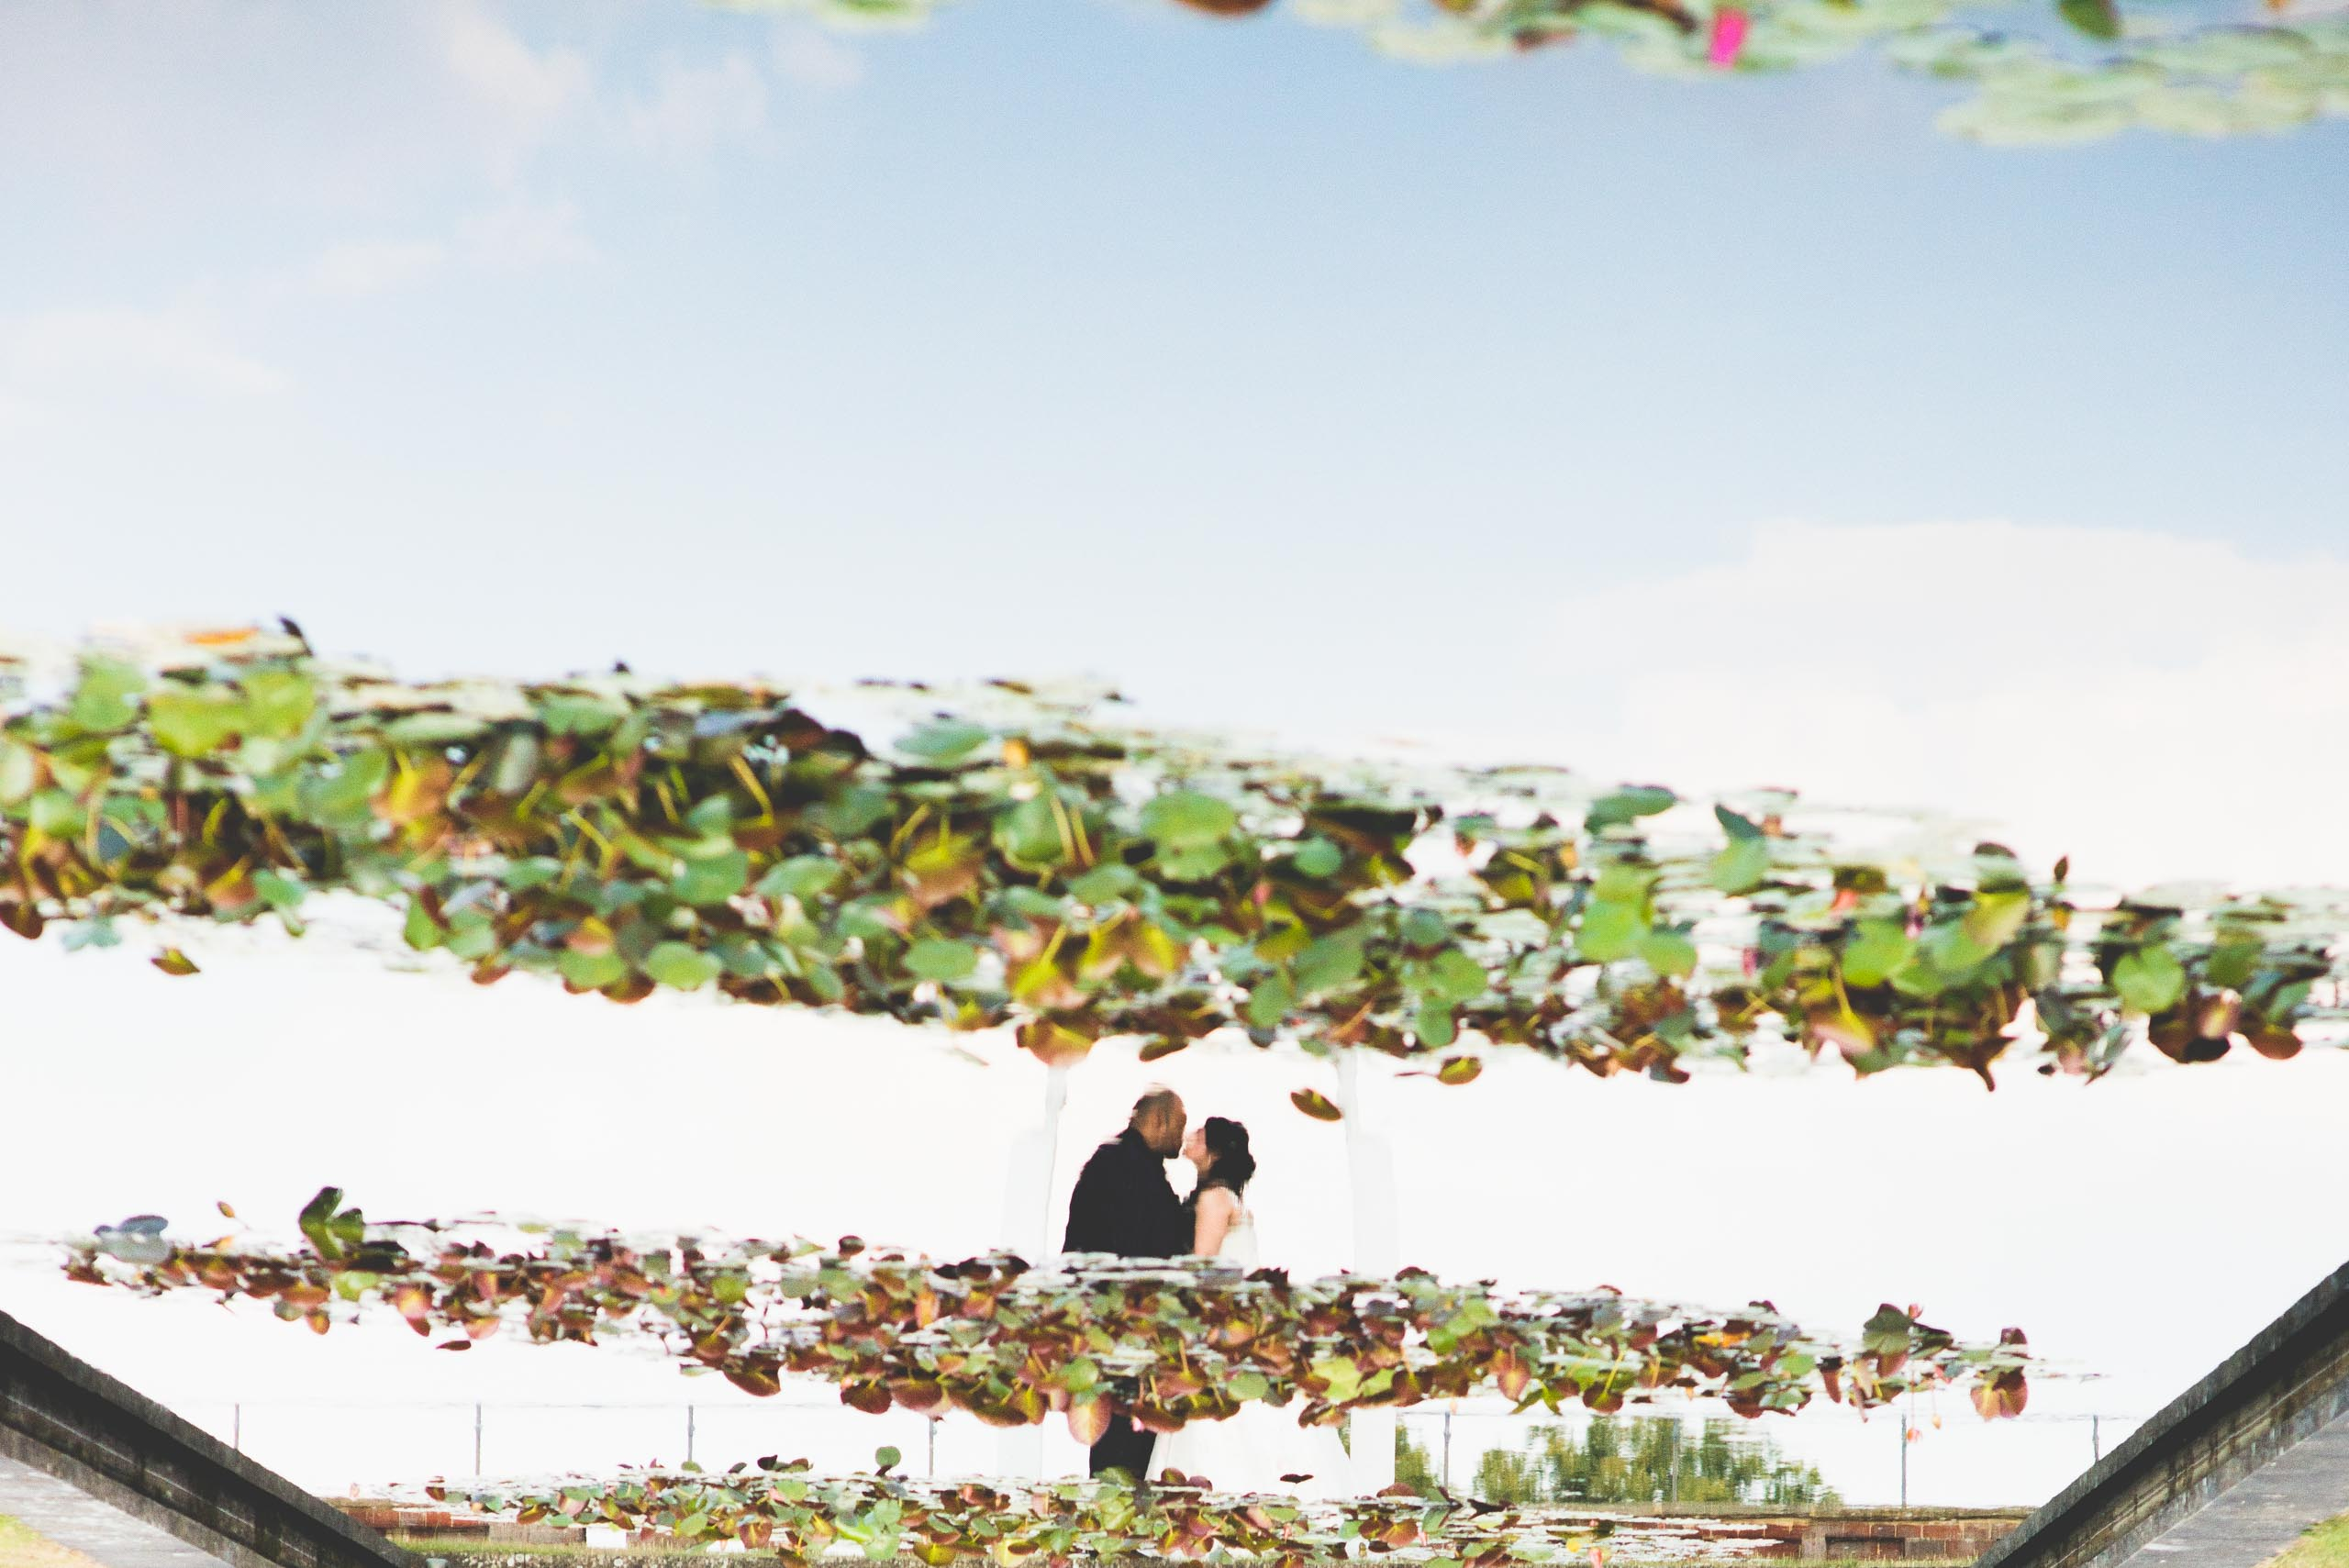 Amit&Amee-preview-edenmoments-13